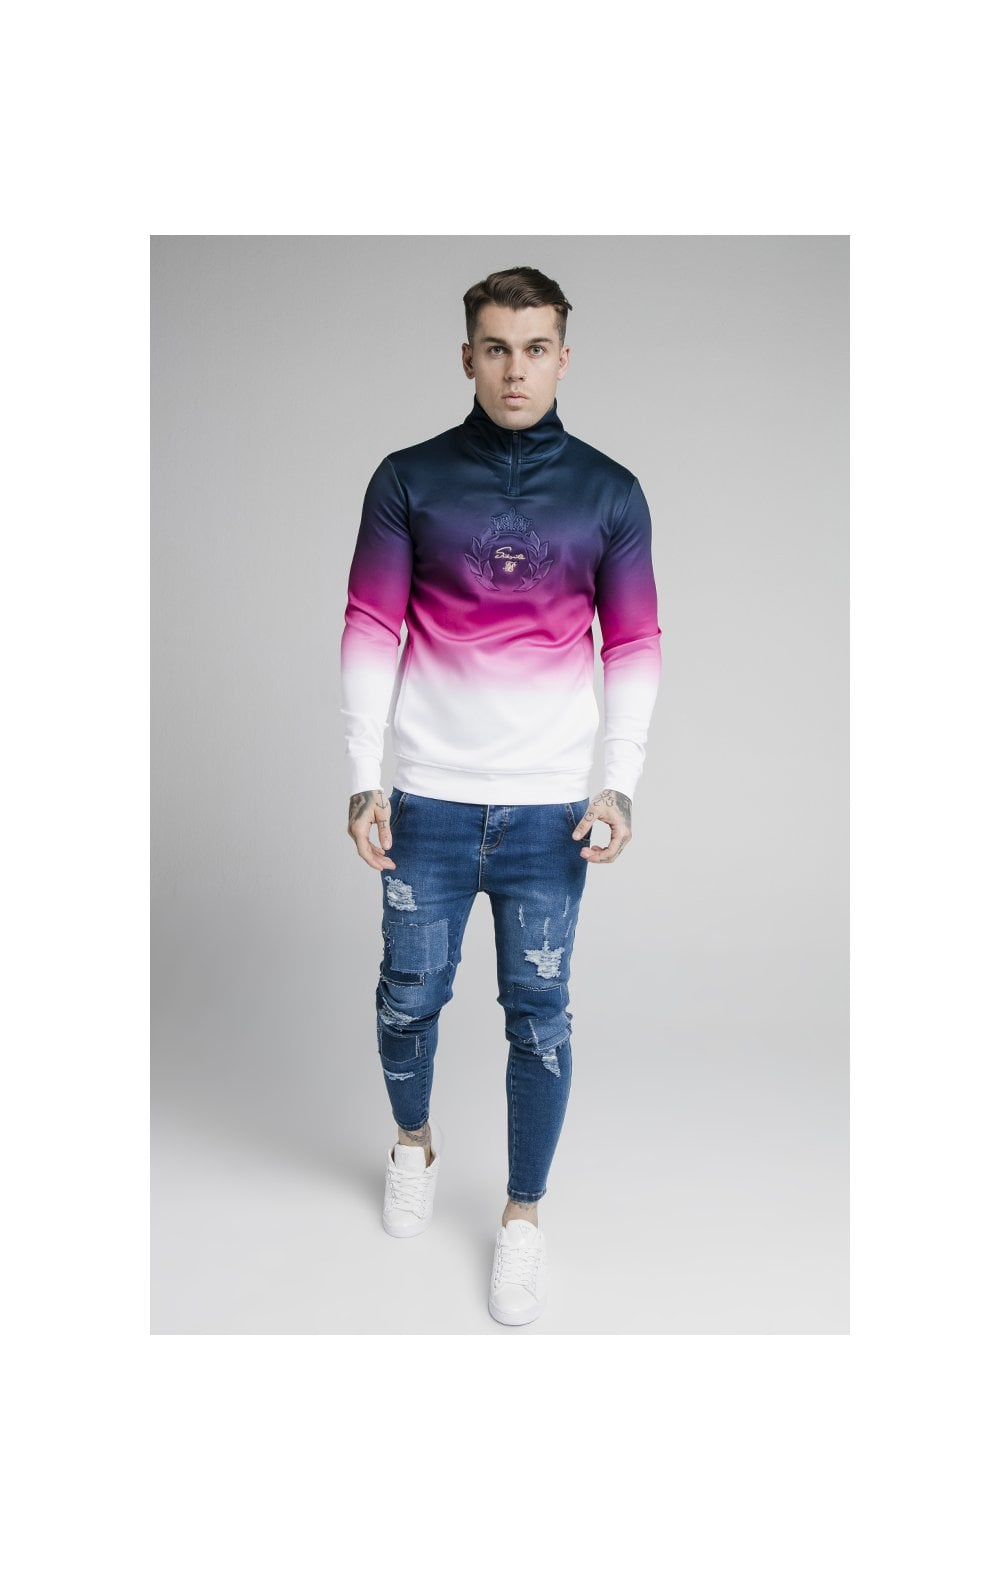 SikSilk Quarter Zip Overhead Track Top - Navy, Pink & White (2)